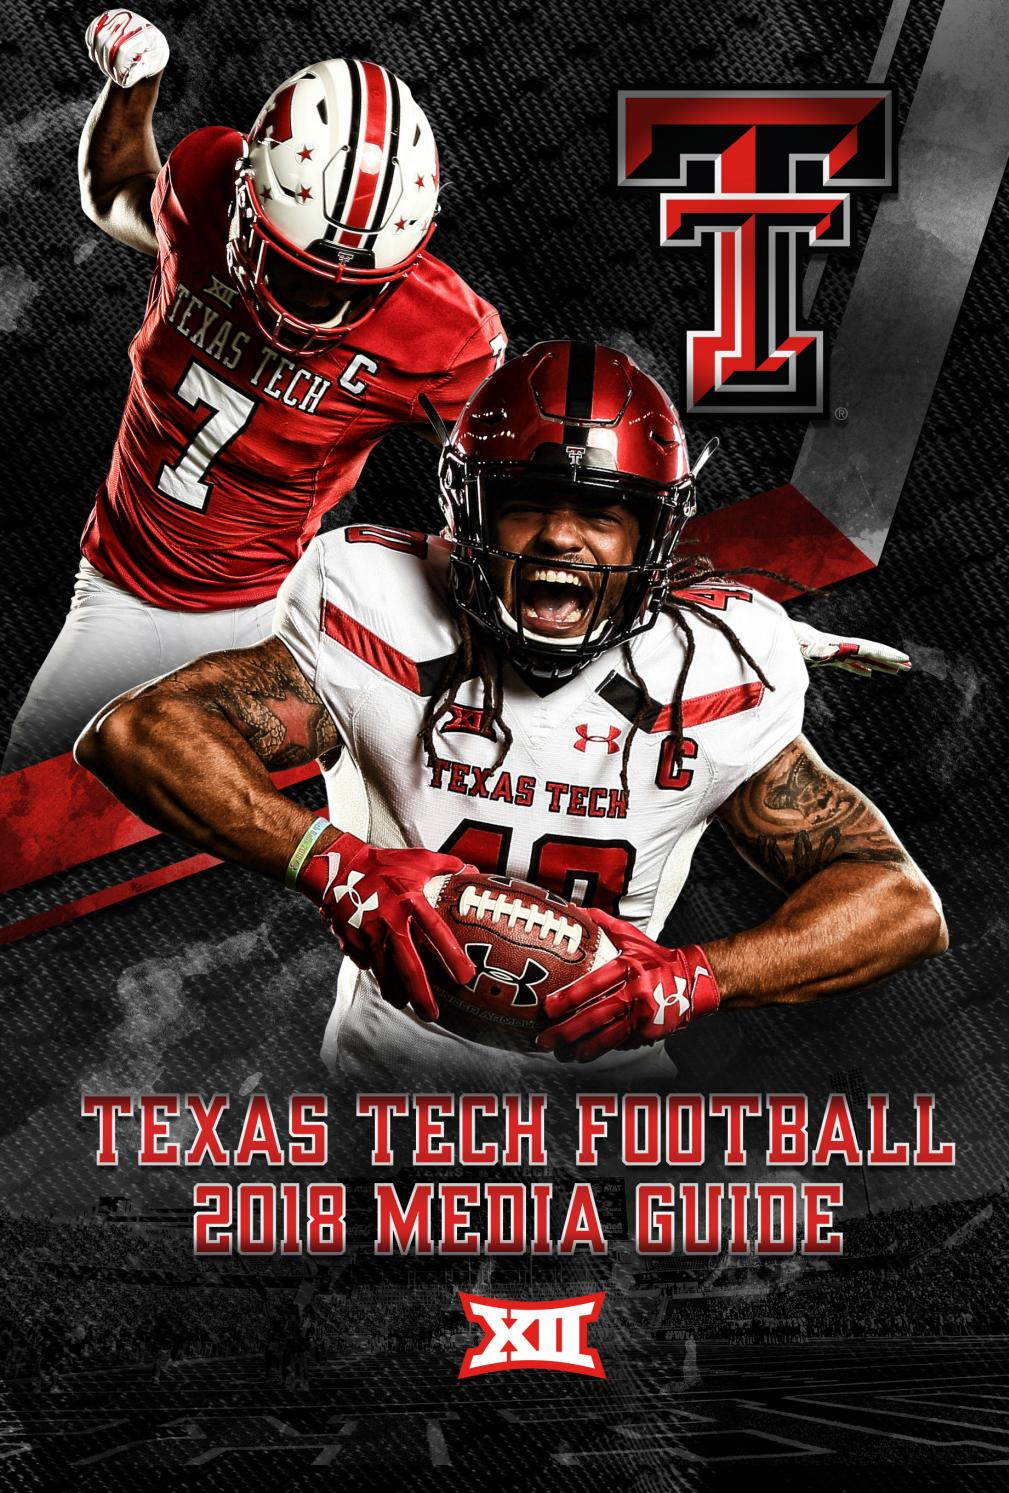 2018 Texas Tech Football Media Guide by Texas Tech Athletics - issuu bea25bc8c